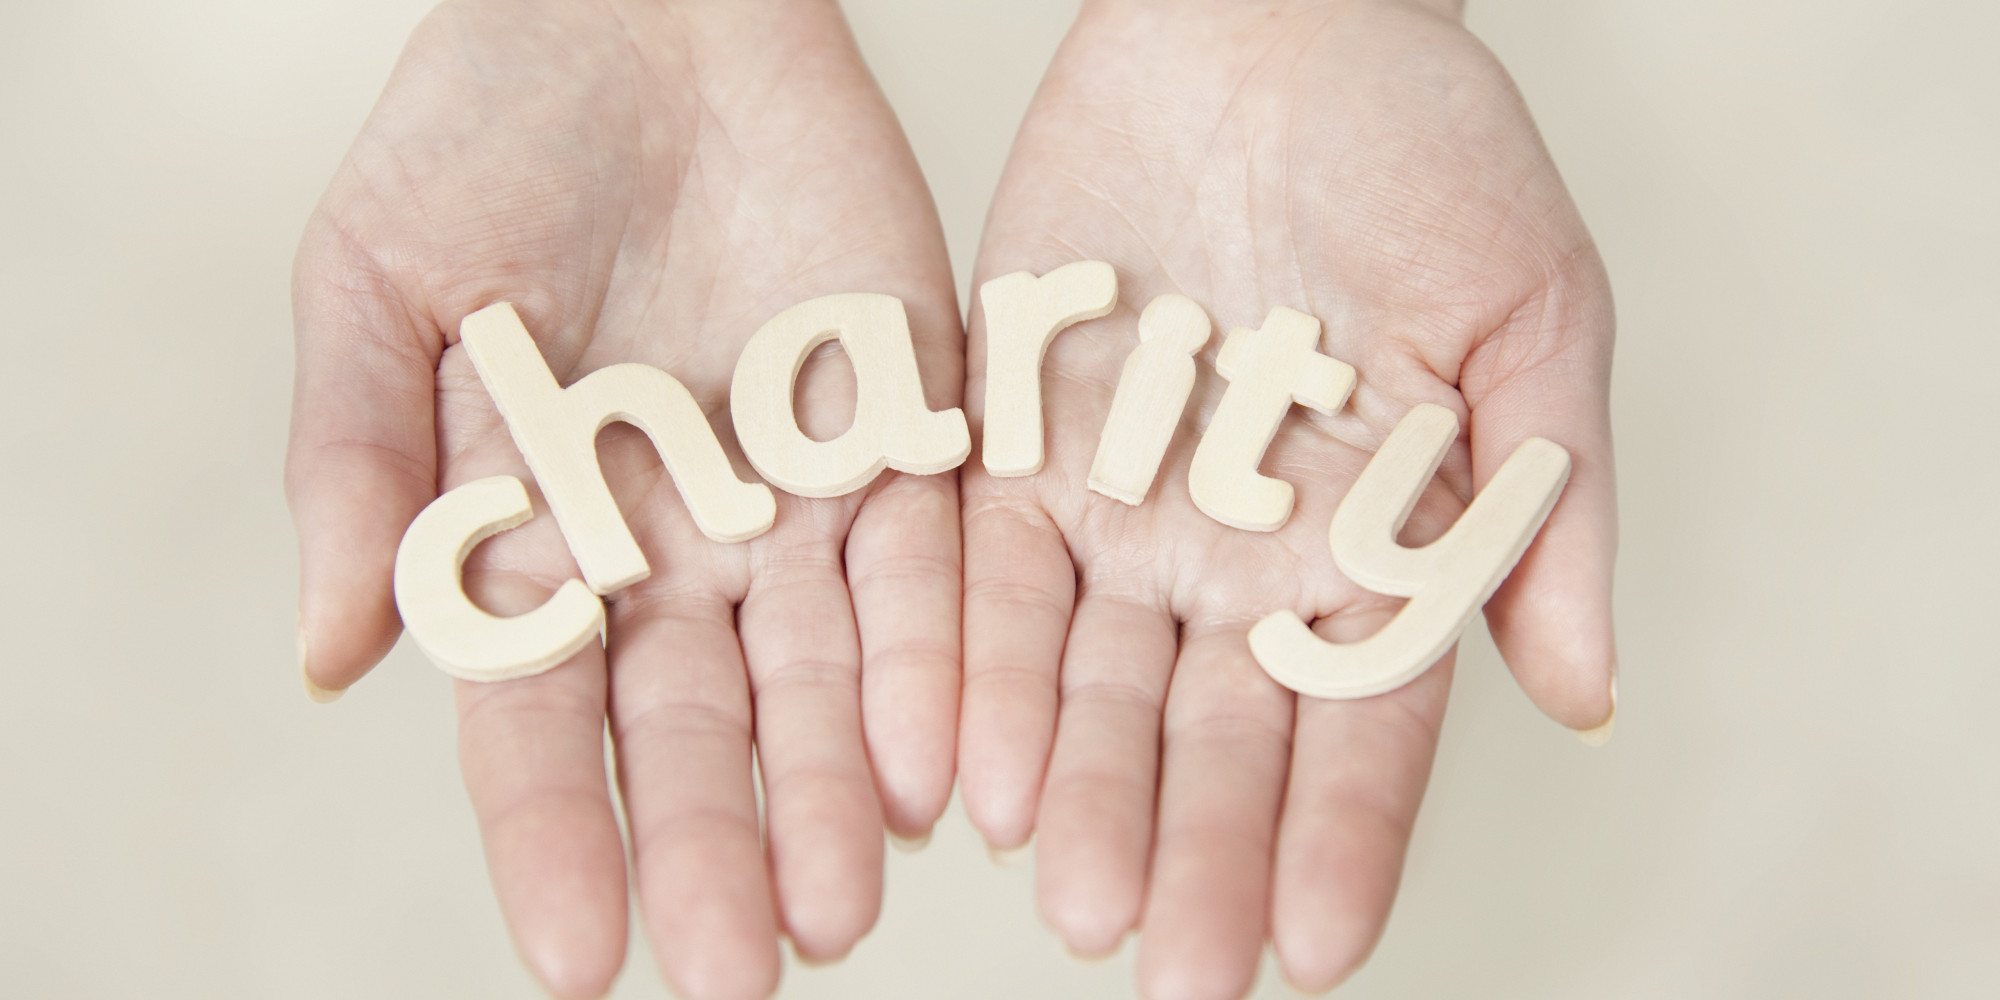 How to raise money for charity?